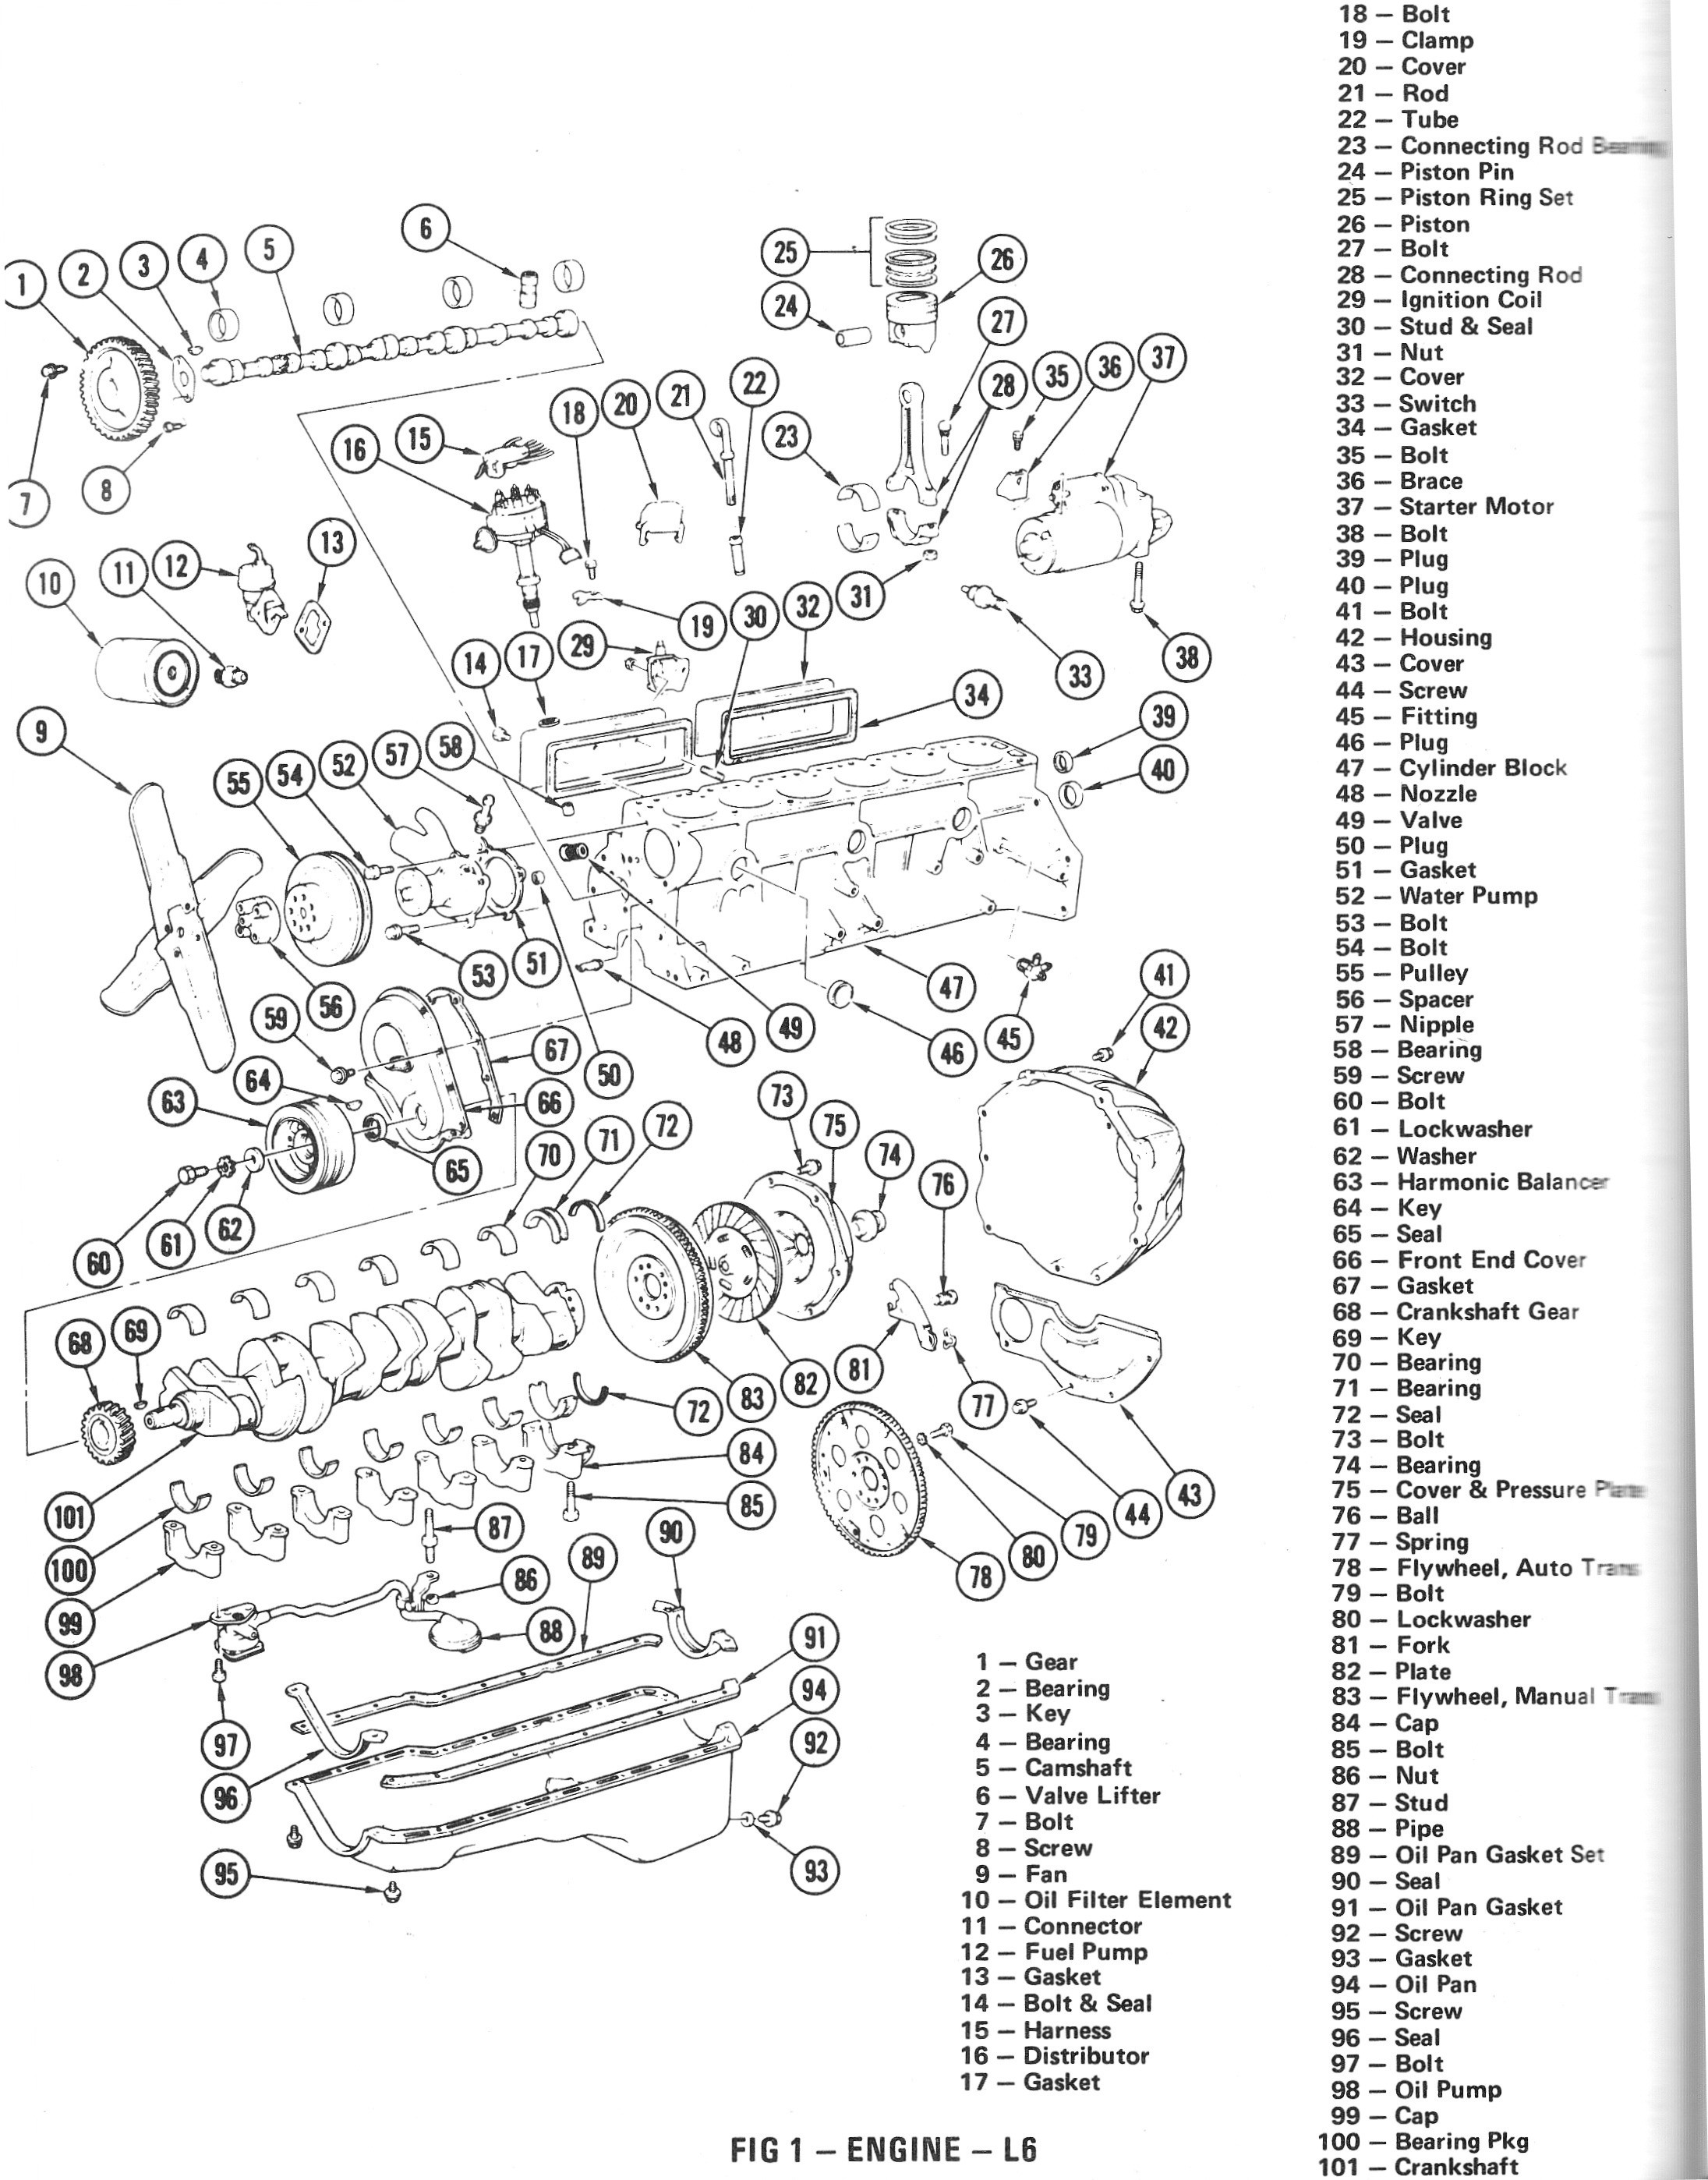 diagram] rear engine diagram 3800 v6 engine full version hd quality v6  engine - cjwiring.les-cafes-deric-orleans.fr  best diagram database